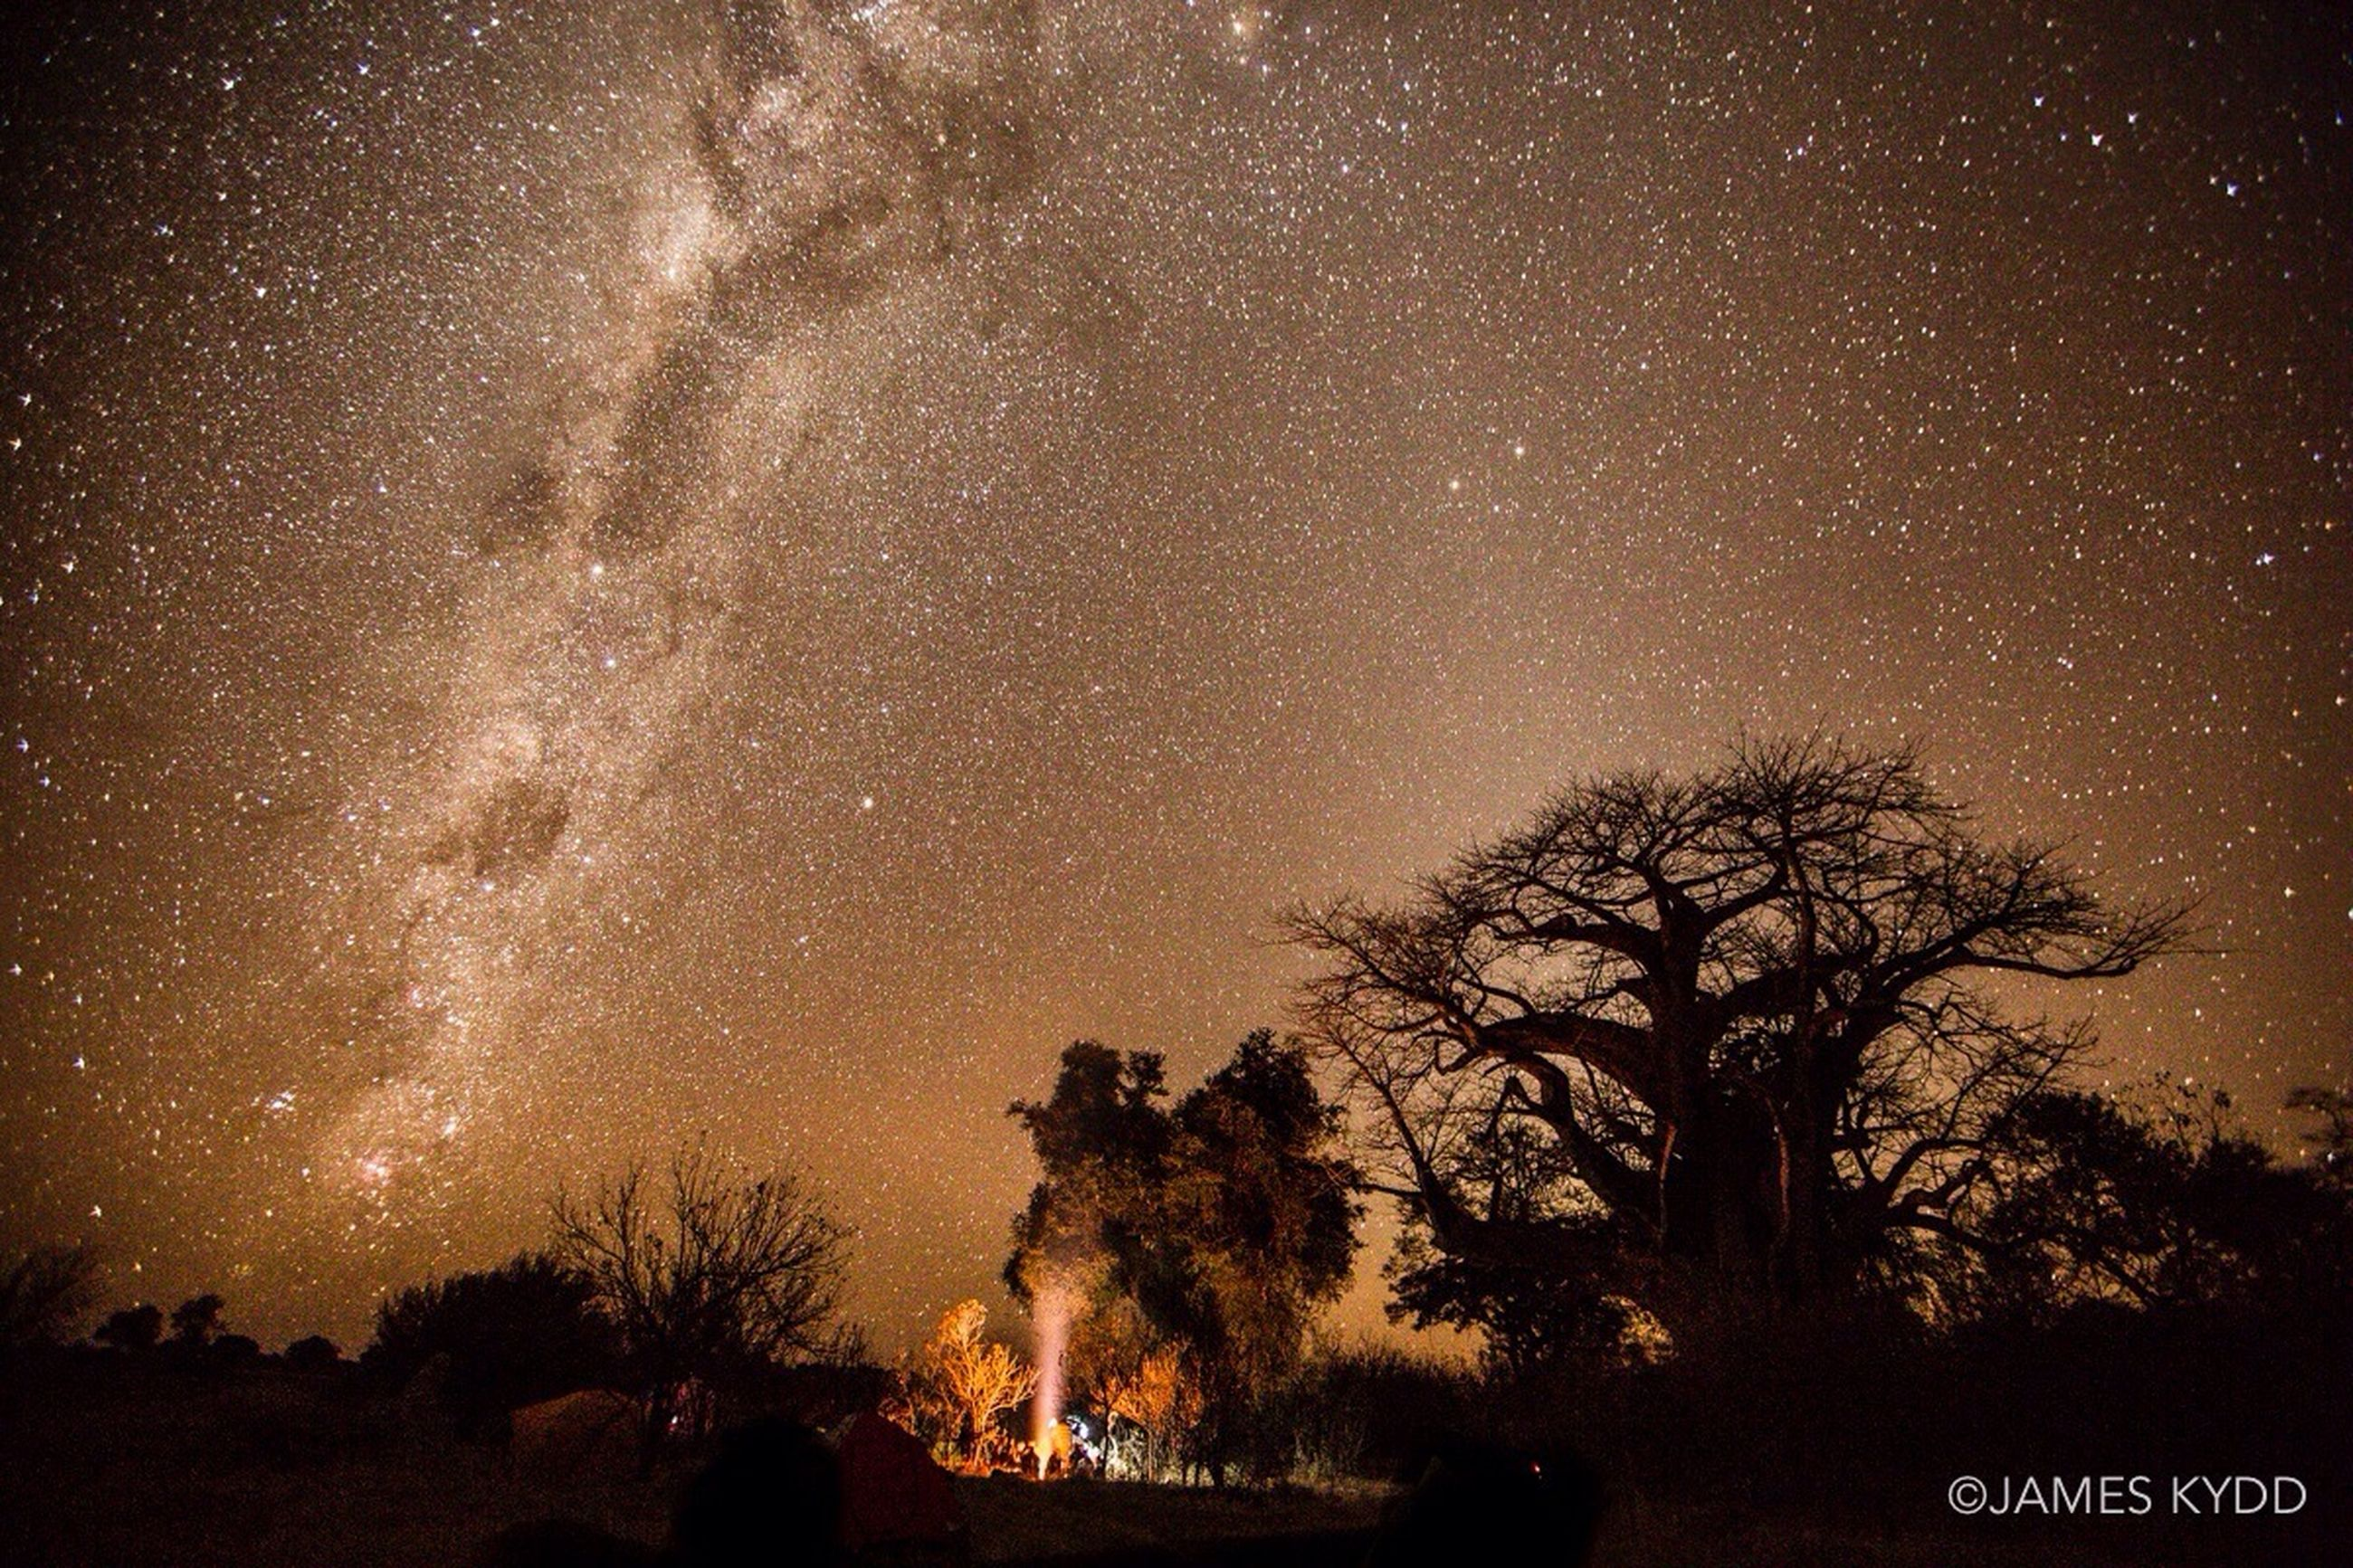 night, tree, star - space, silhouette, star field, low angle view, scenics, sky, illuminated, beauty in nature, galaxy, tranquil scene, astronomy, tranquility, star, nature, dark, milky way, idyllic, outdoors